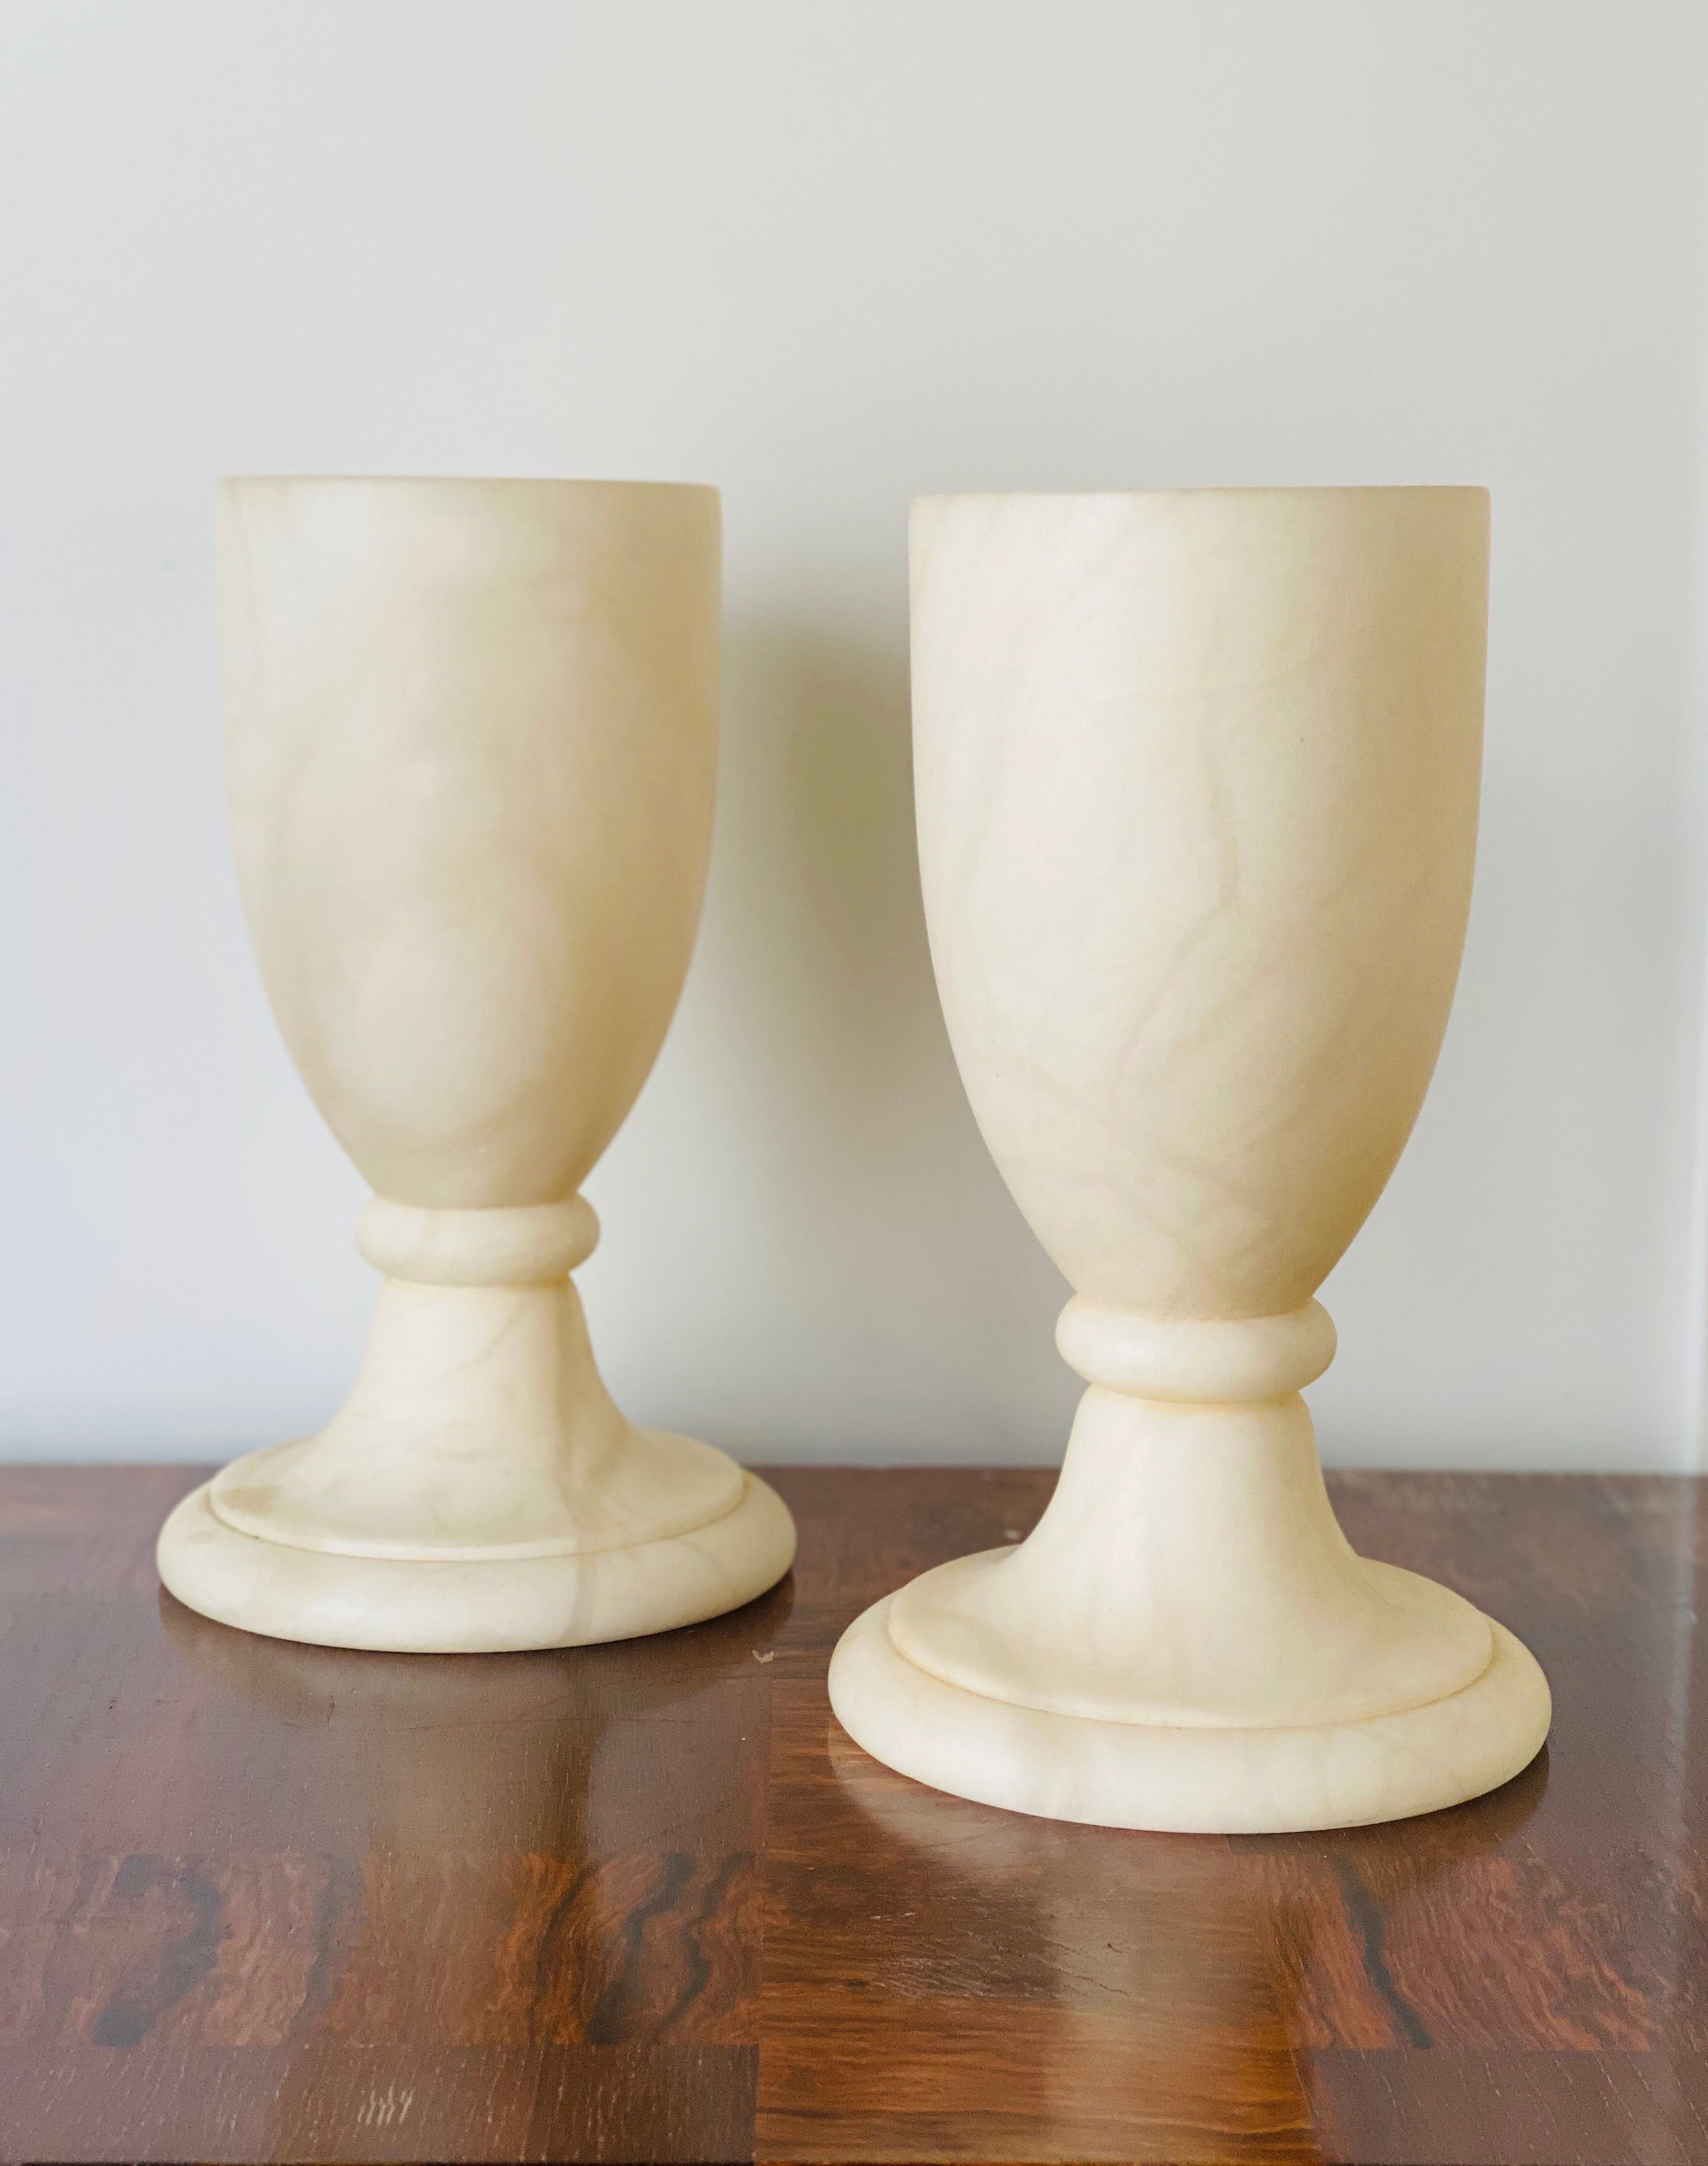 French Art Deco Alabaster Table Lamps, Pair